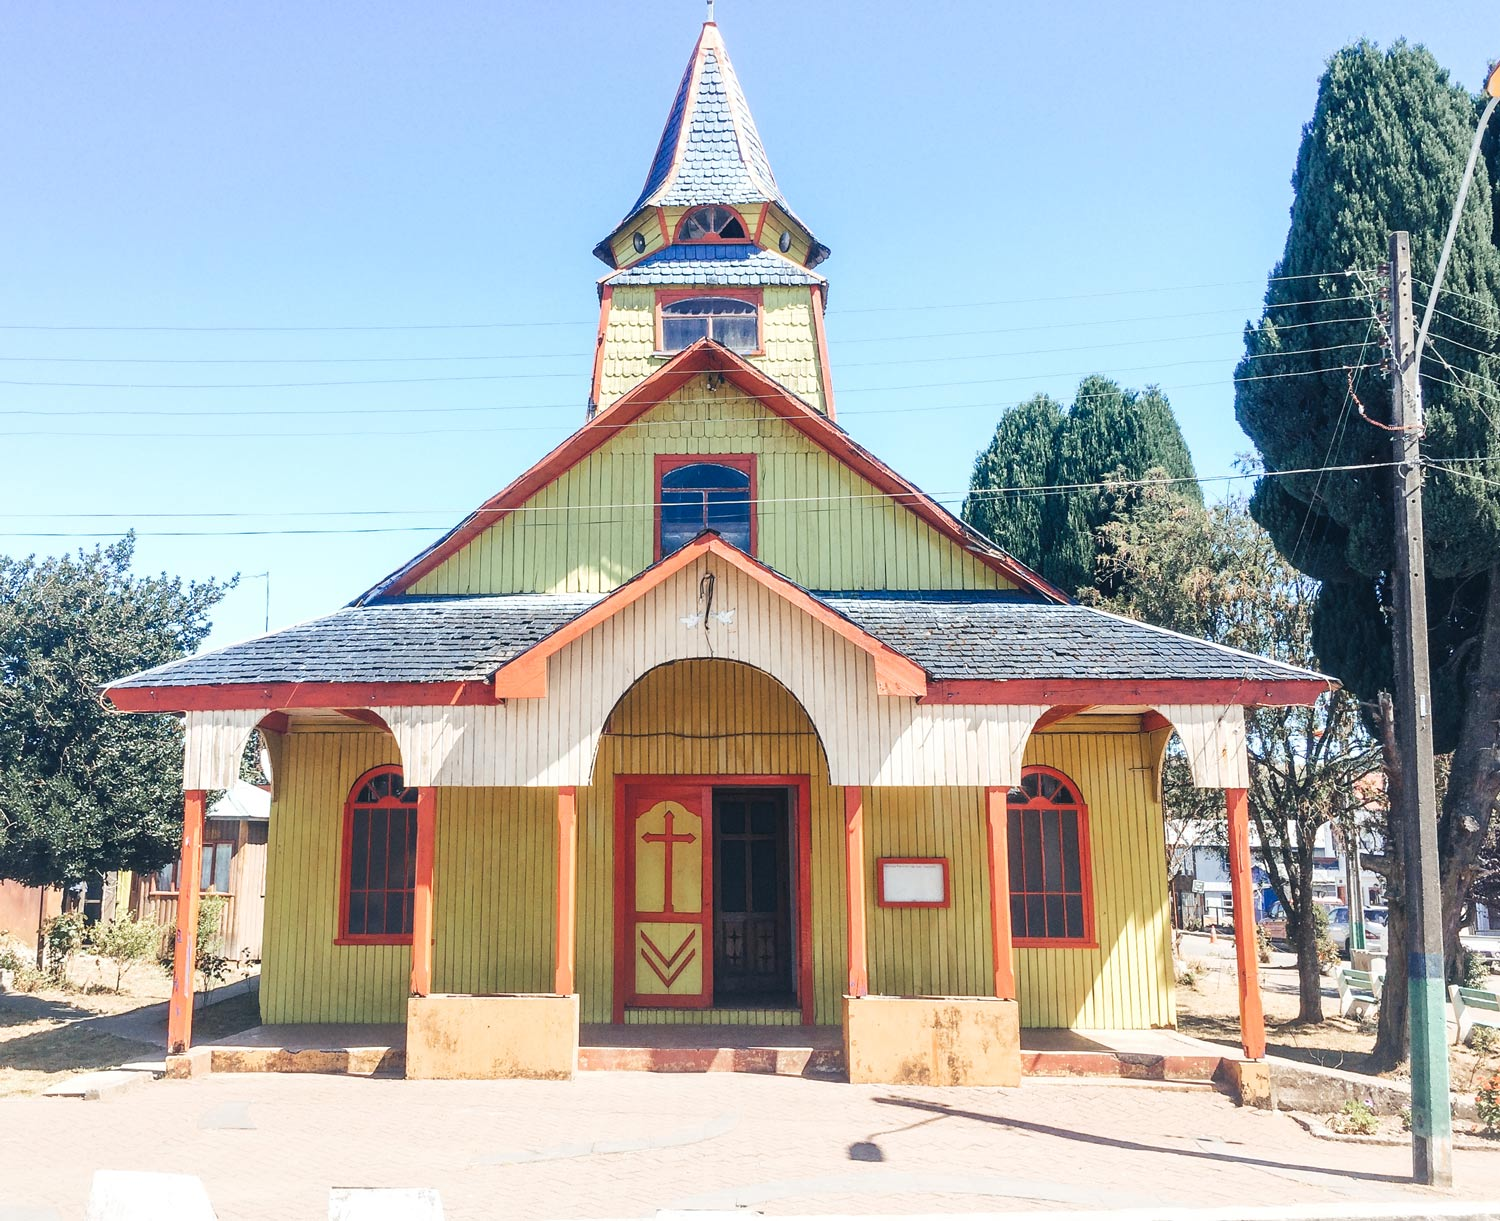 Here's the best way to backpack Chiloé Island. A green church made from wood with a large spire